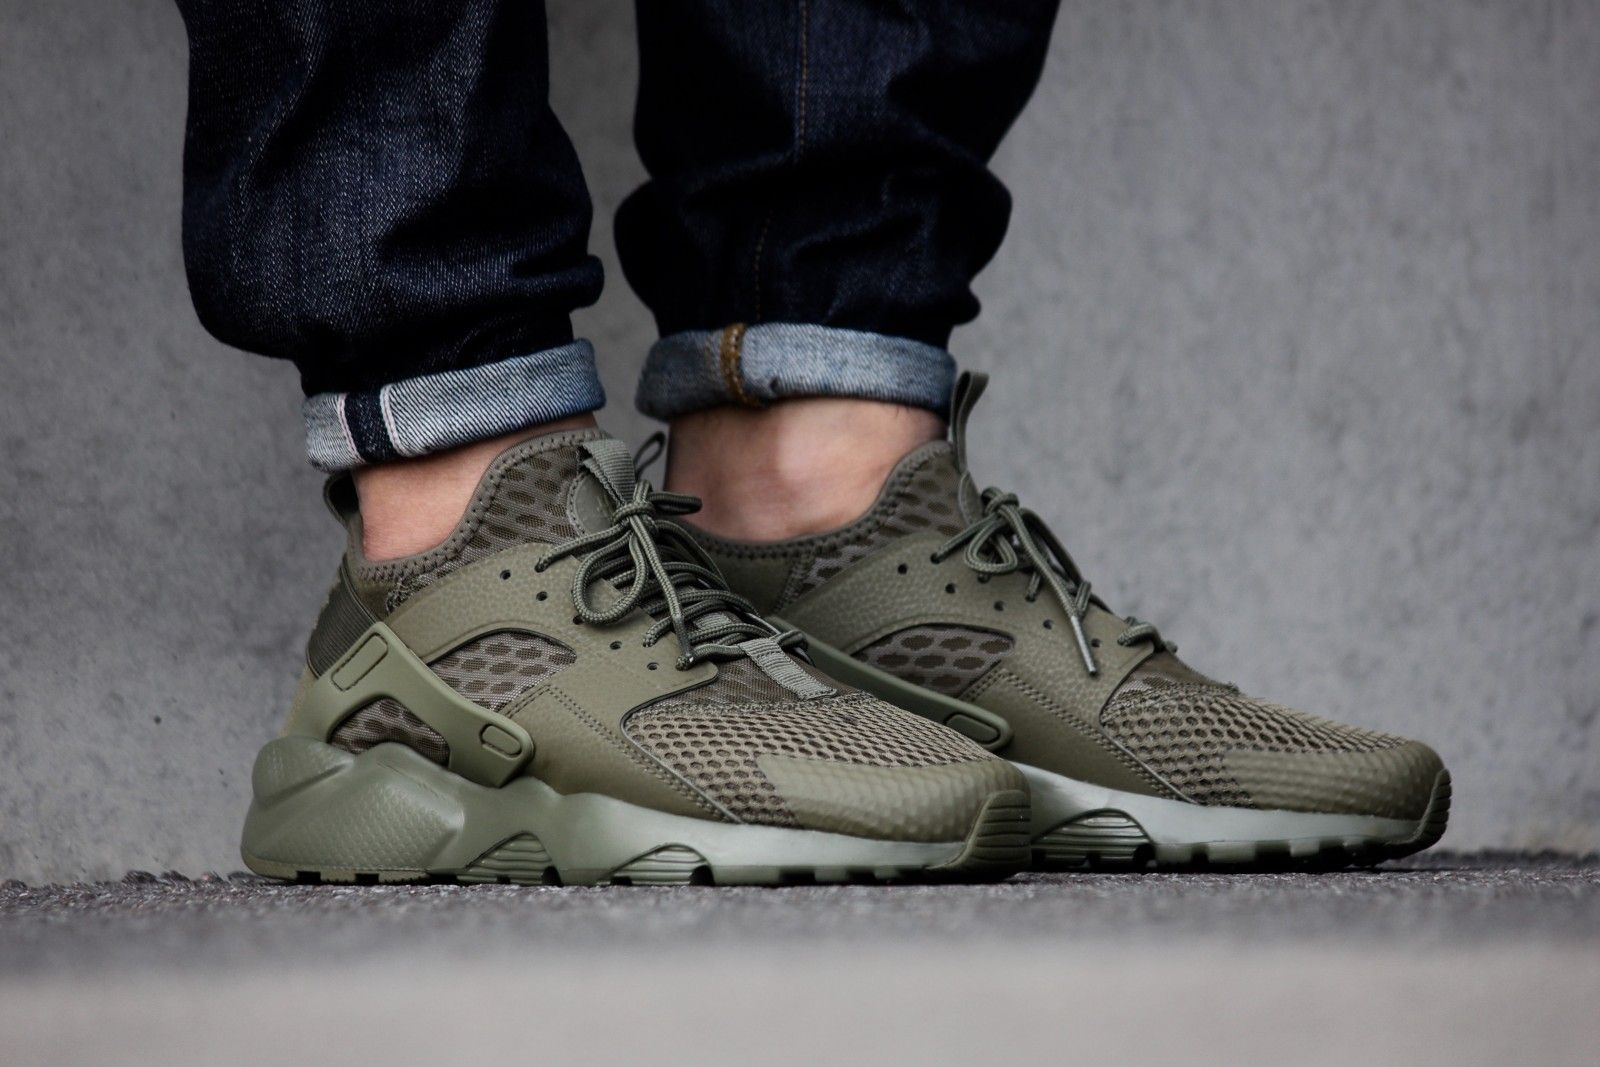 732be1f4403e Nike Air Huarache Ultra BR Medium Olive - 833147-200